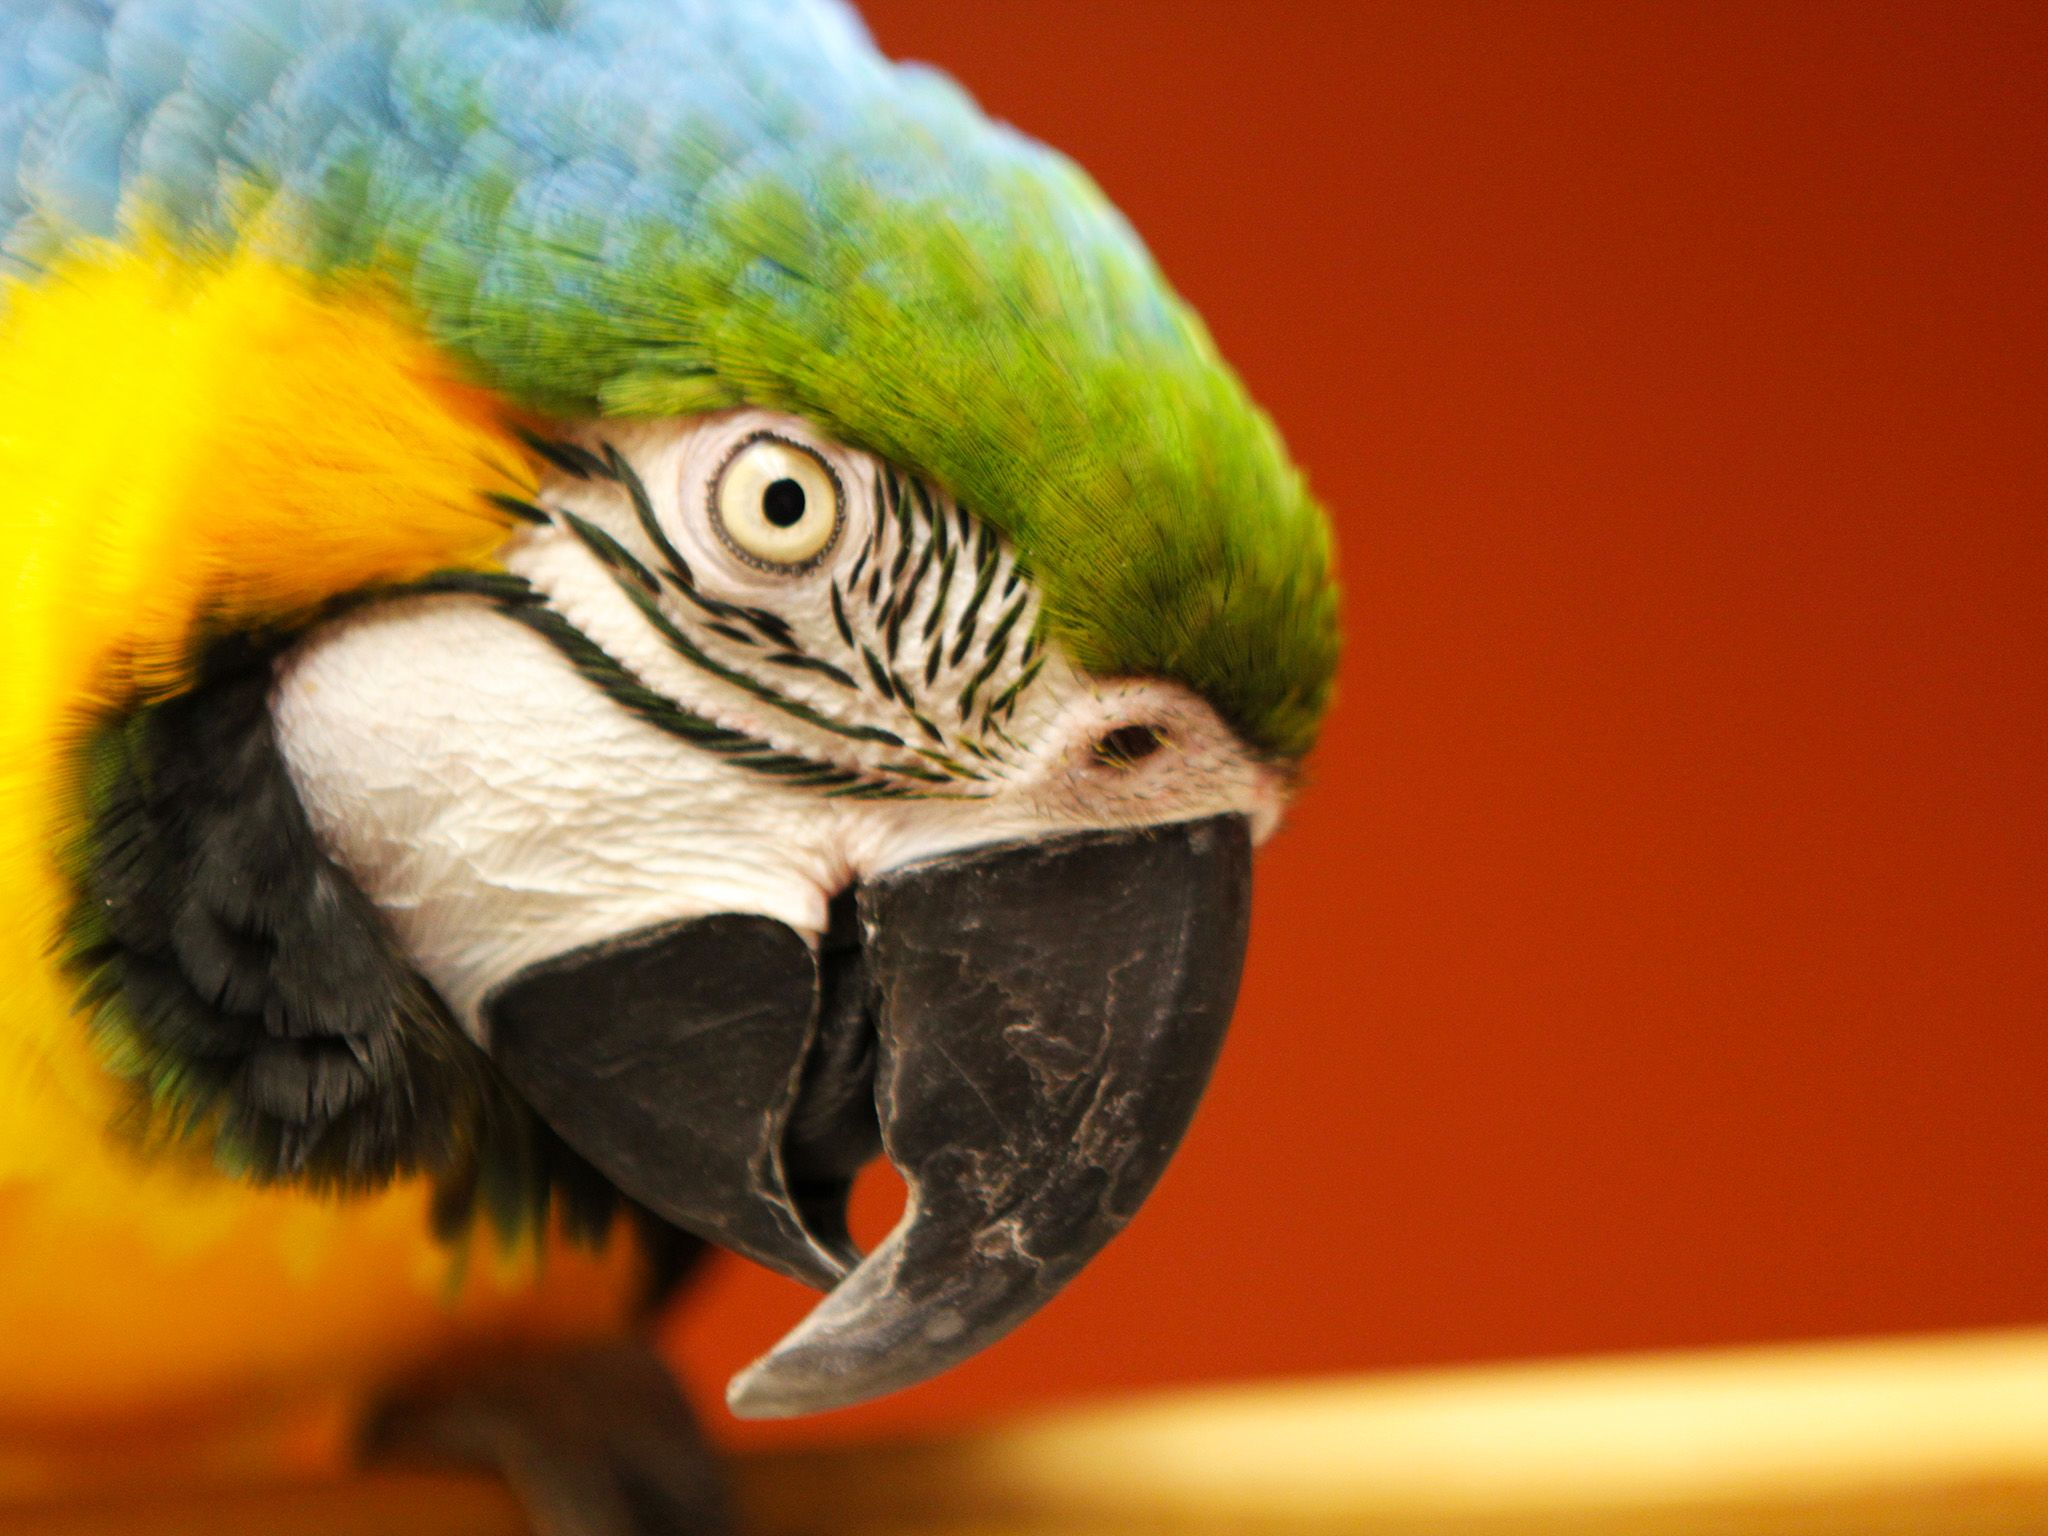 Dr. Kelleher's blue and gold macaw, Xander, sitting on a perch in the treatment room. This image ... [Фото дня - Октябрь 2014]